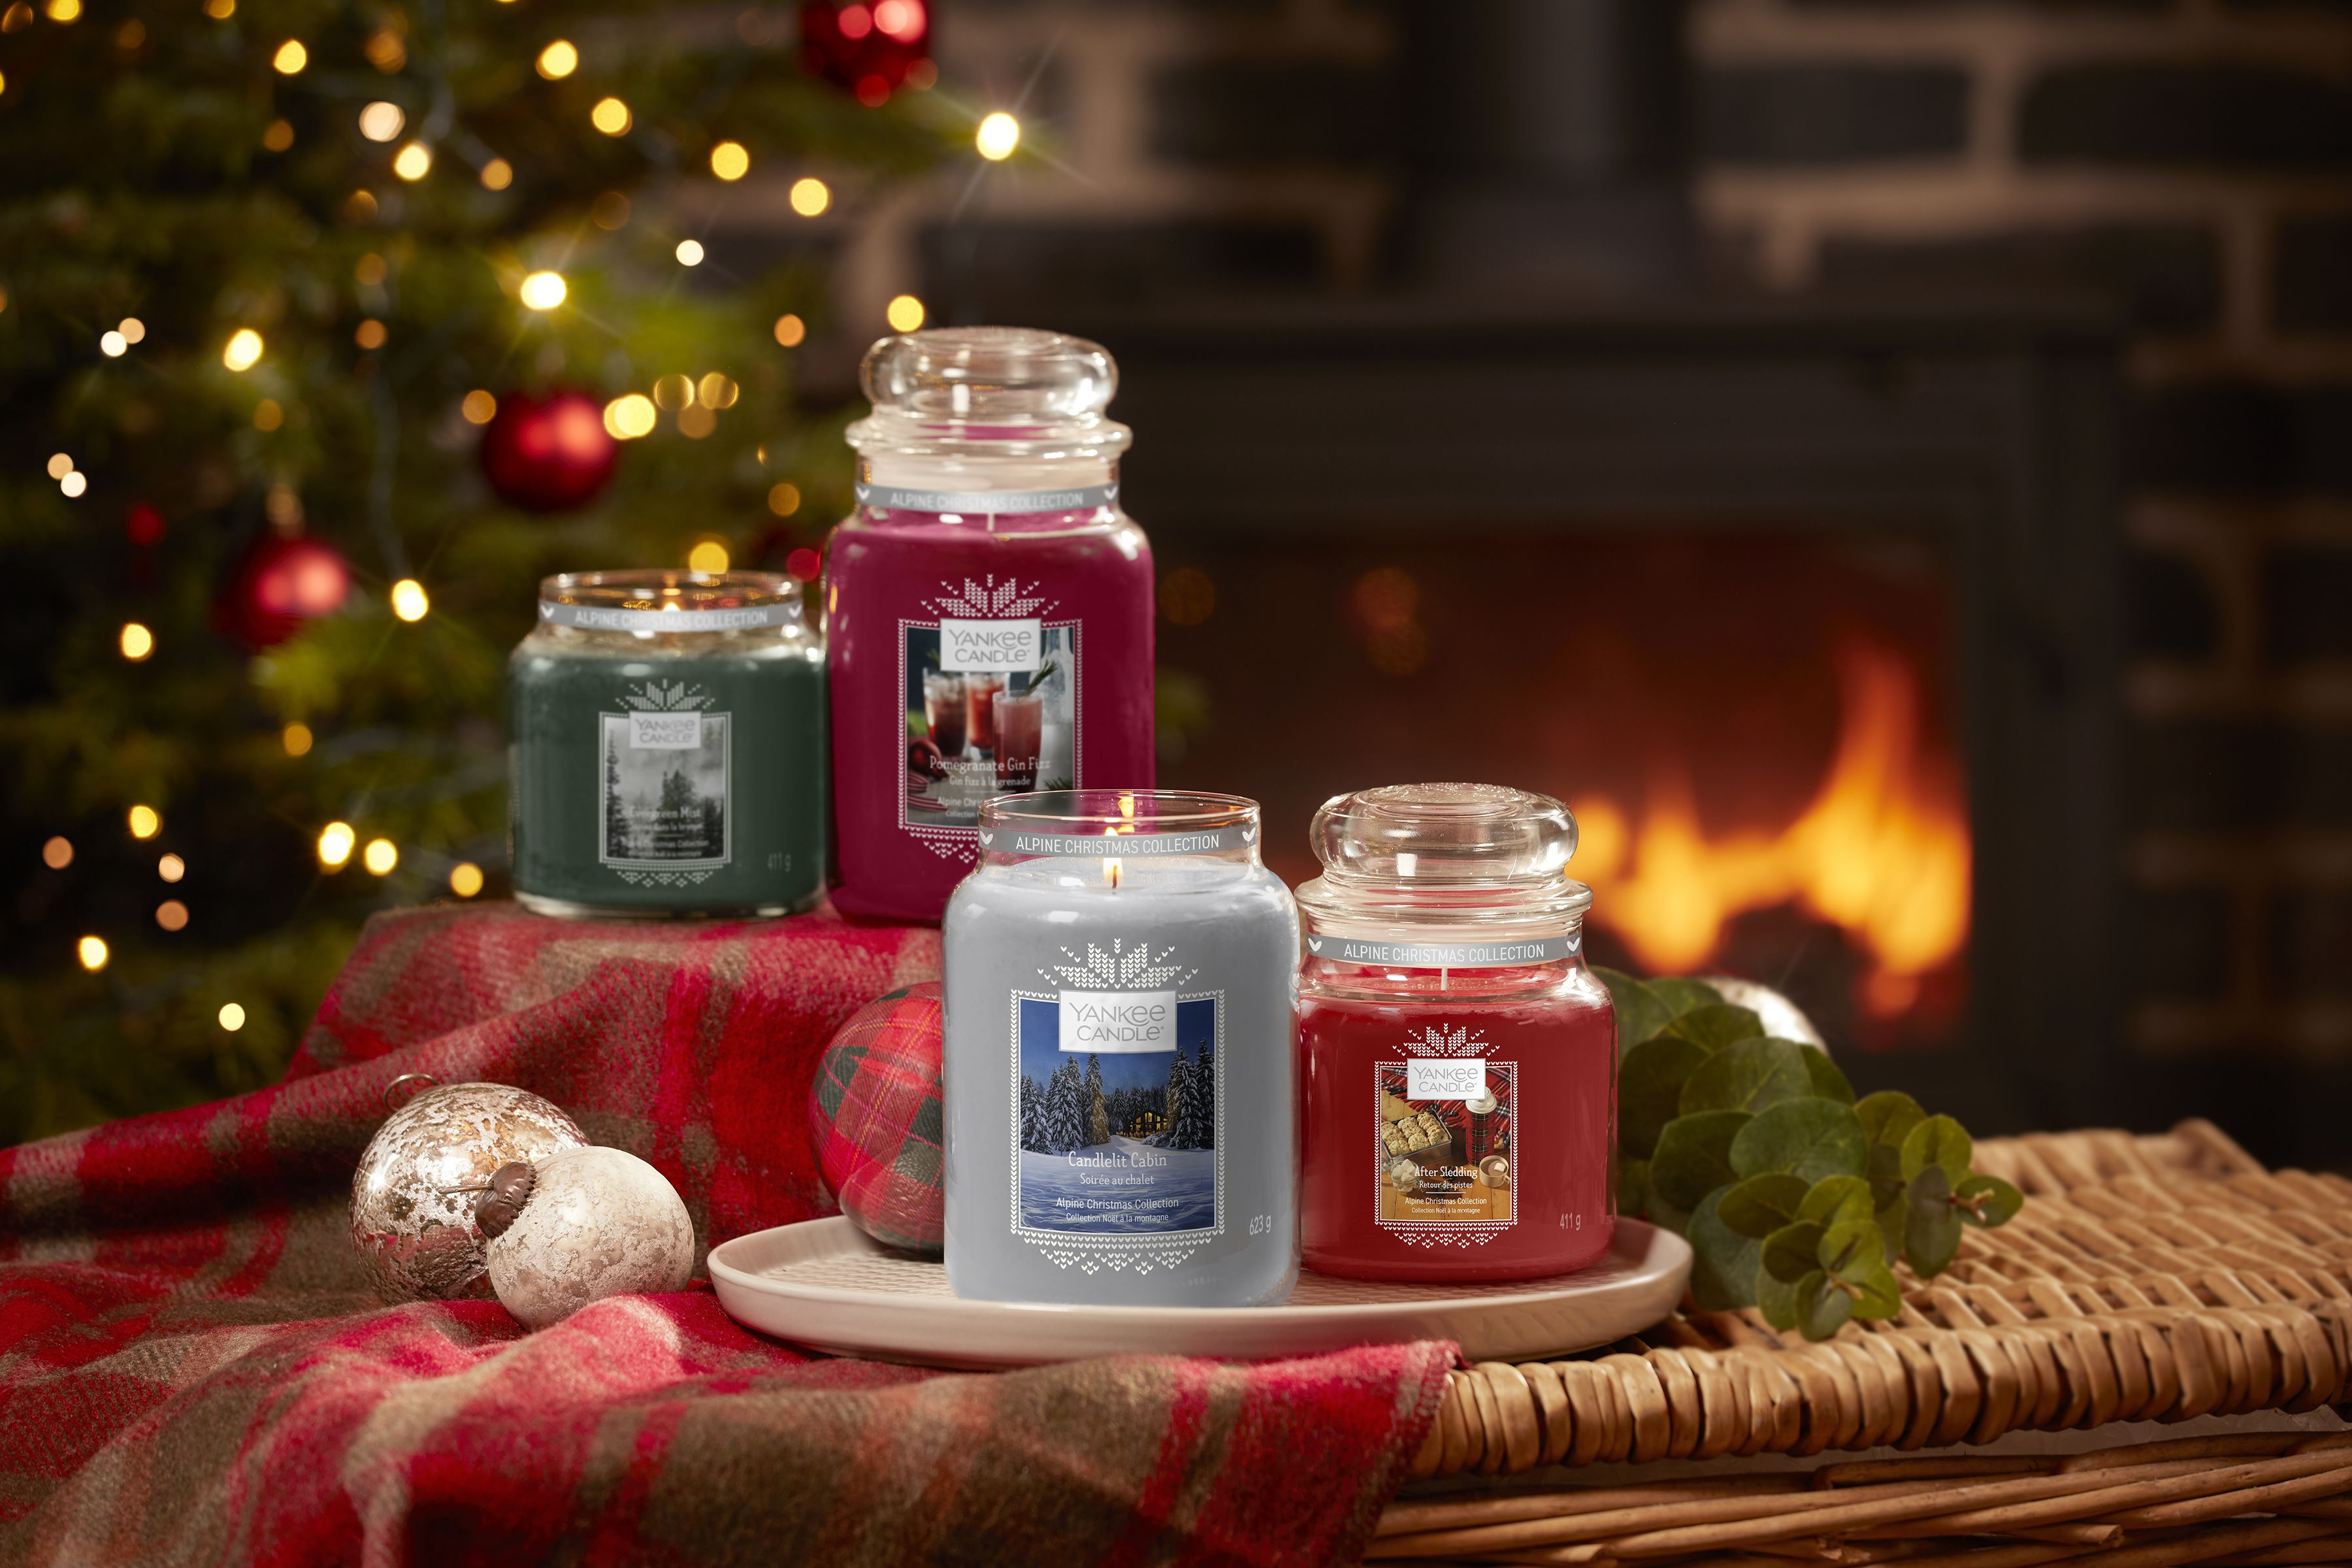 Zerchoo Lifestyle - Yankee Candle launches 4 new must-have Christmas